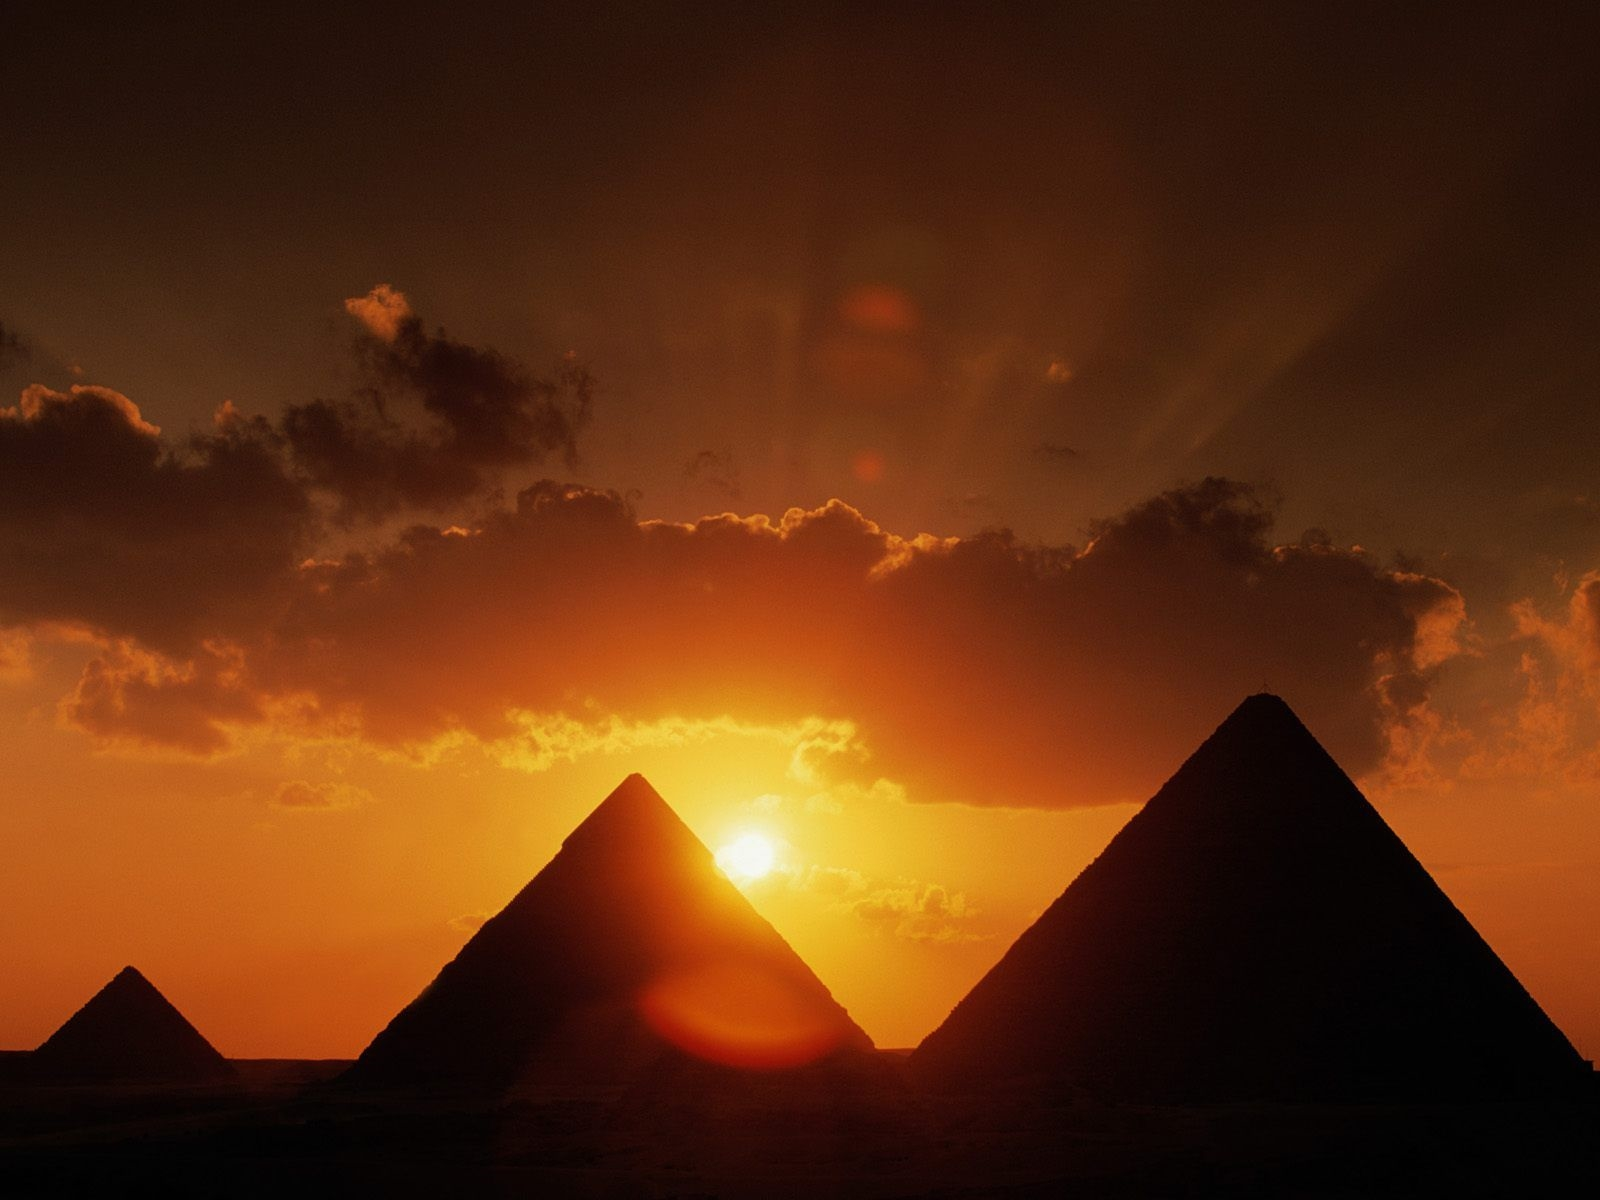 egypt hd background